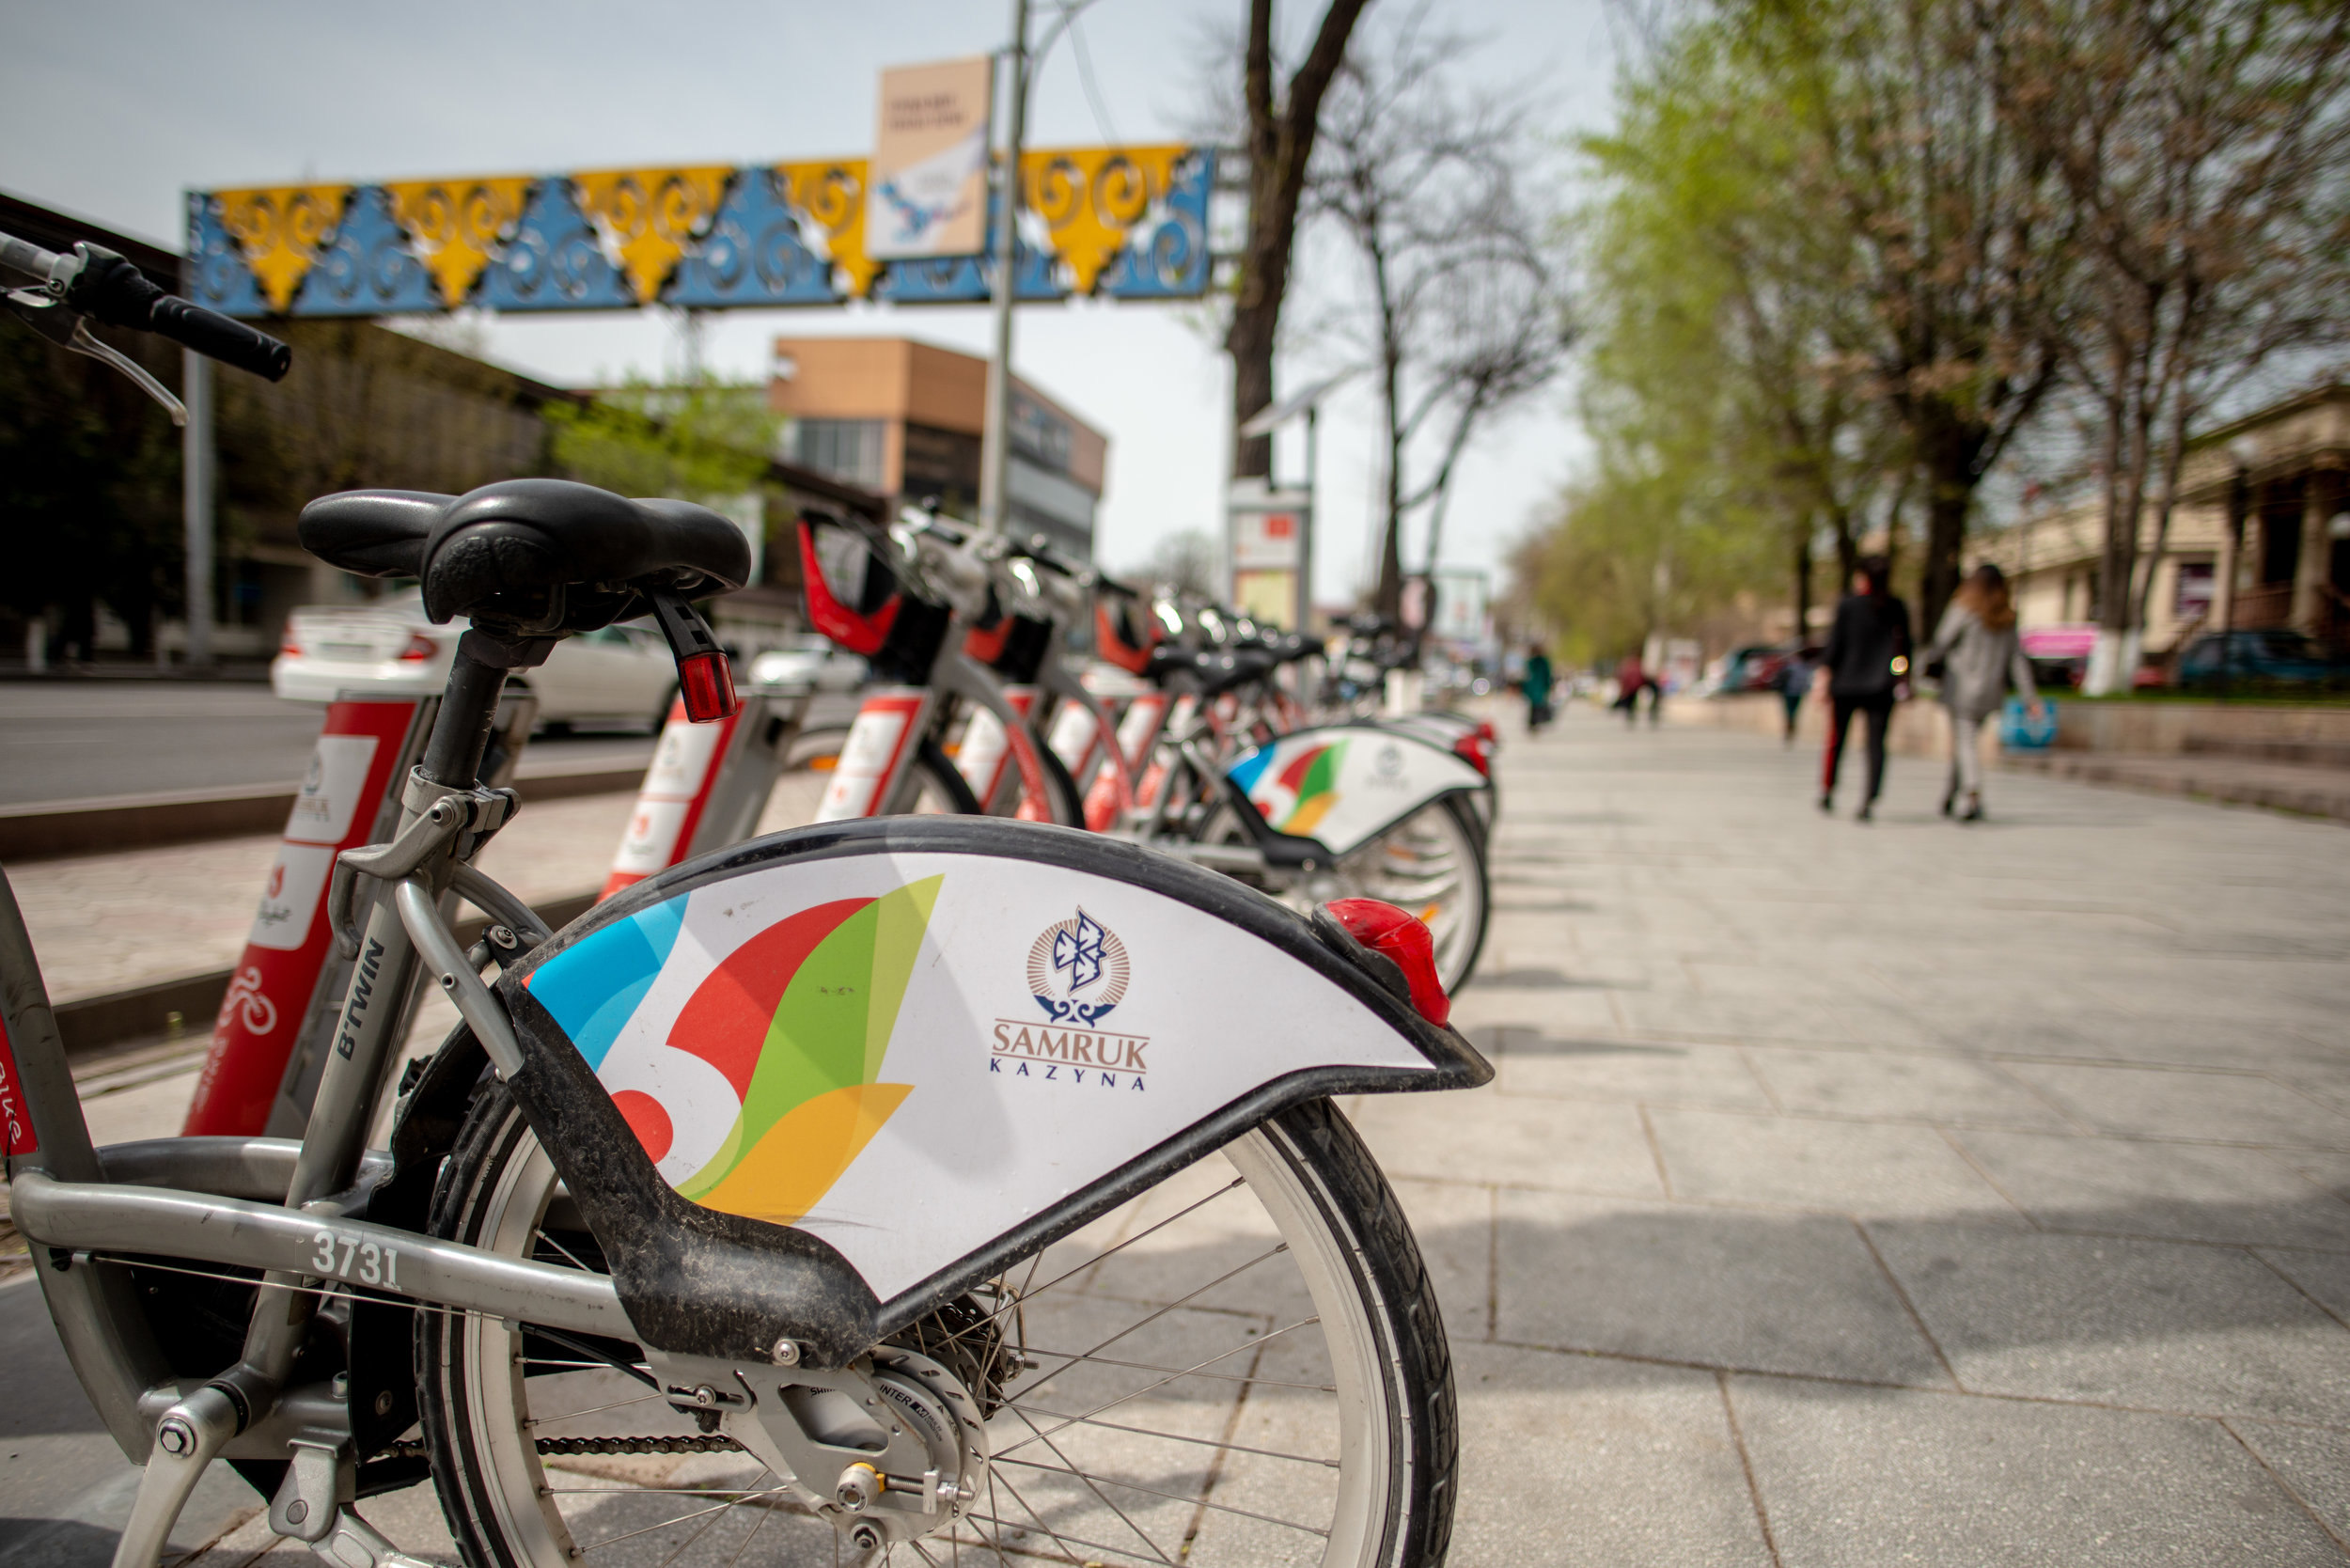 Shymkent's local bike share system, Shymkent Bike.